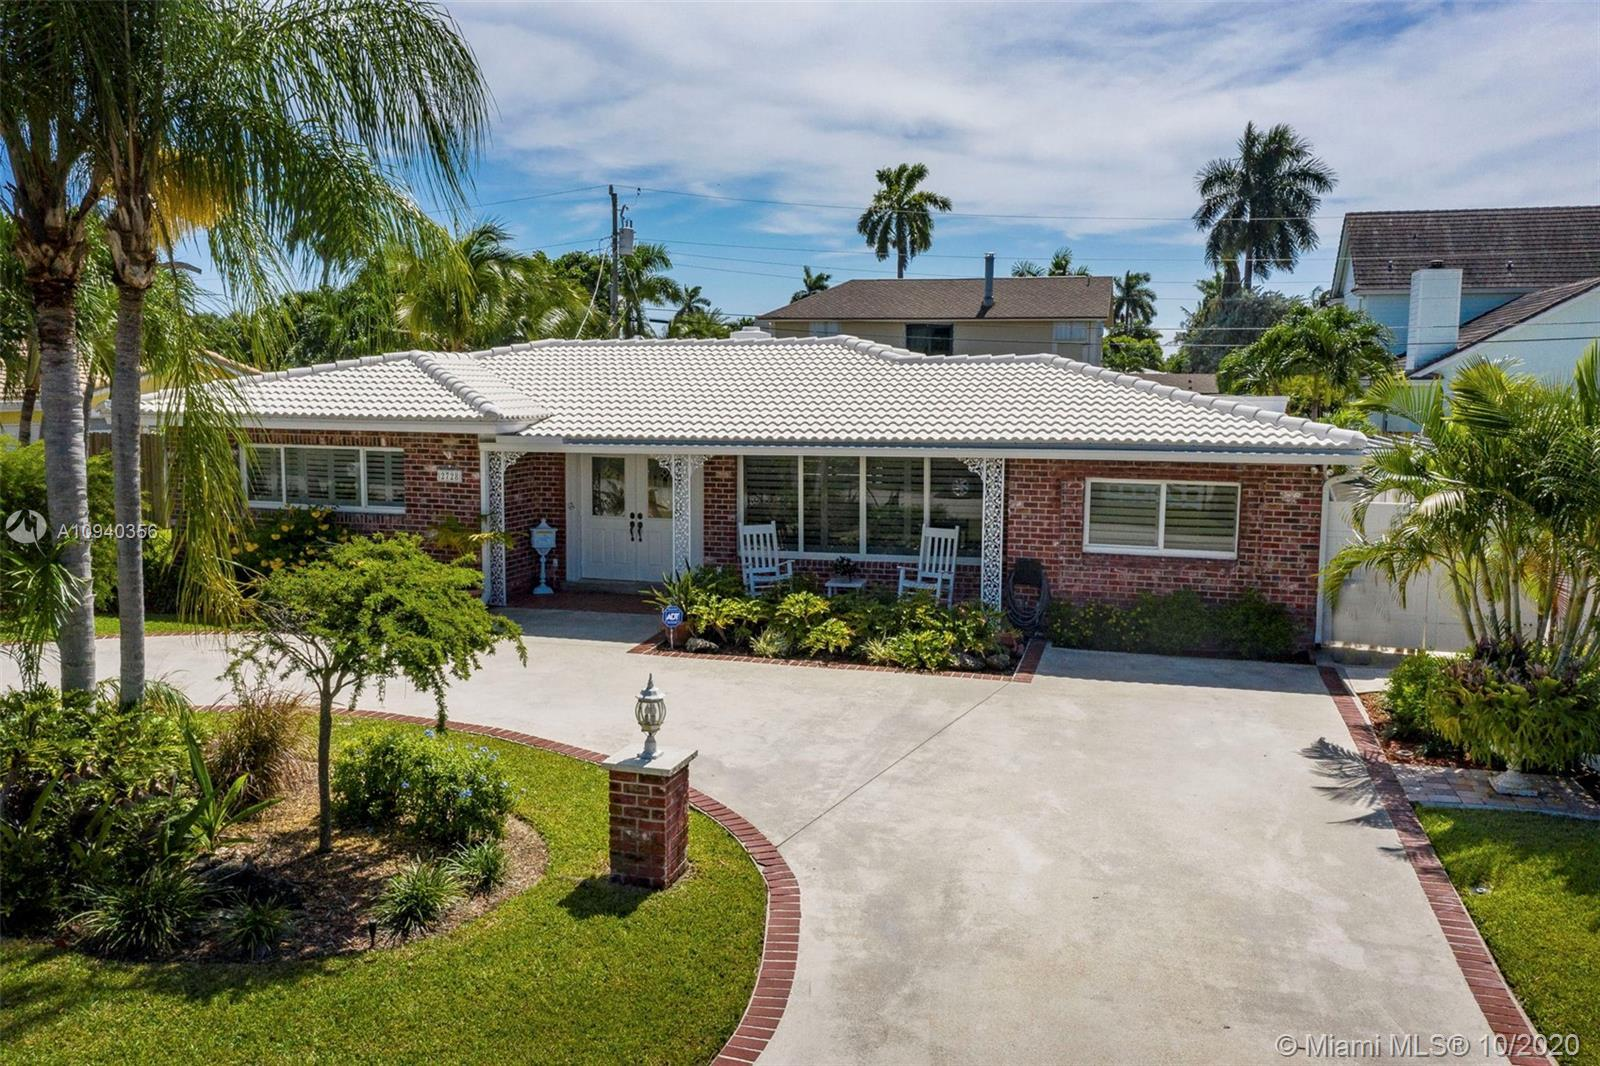 Beautiful and rarely available 2600+ sq ft under air, single story, 5 bed 3 bath pool home in desira